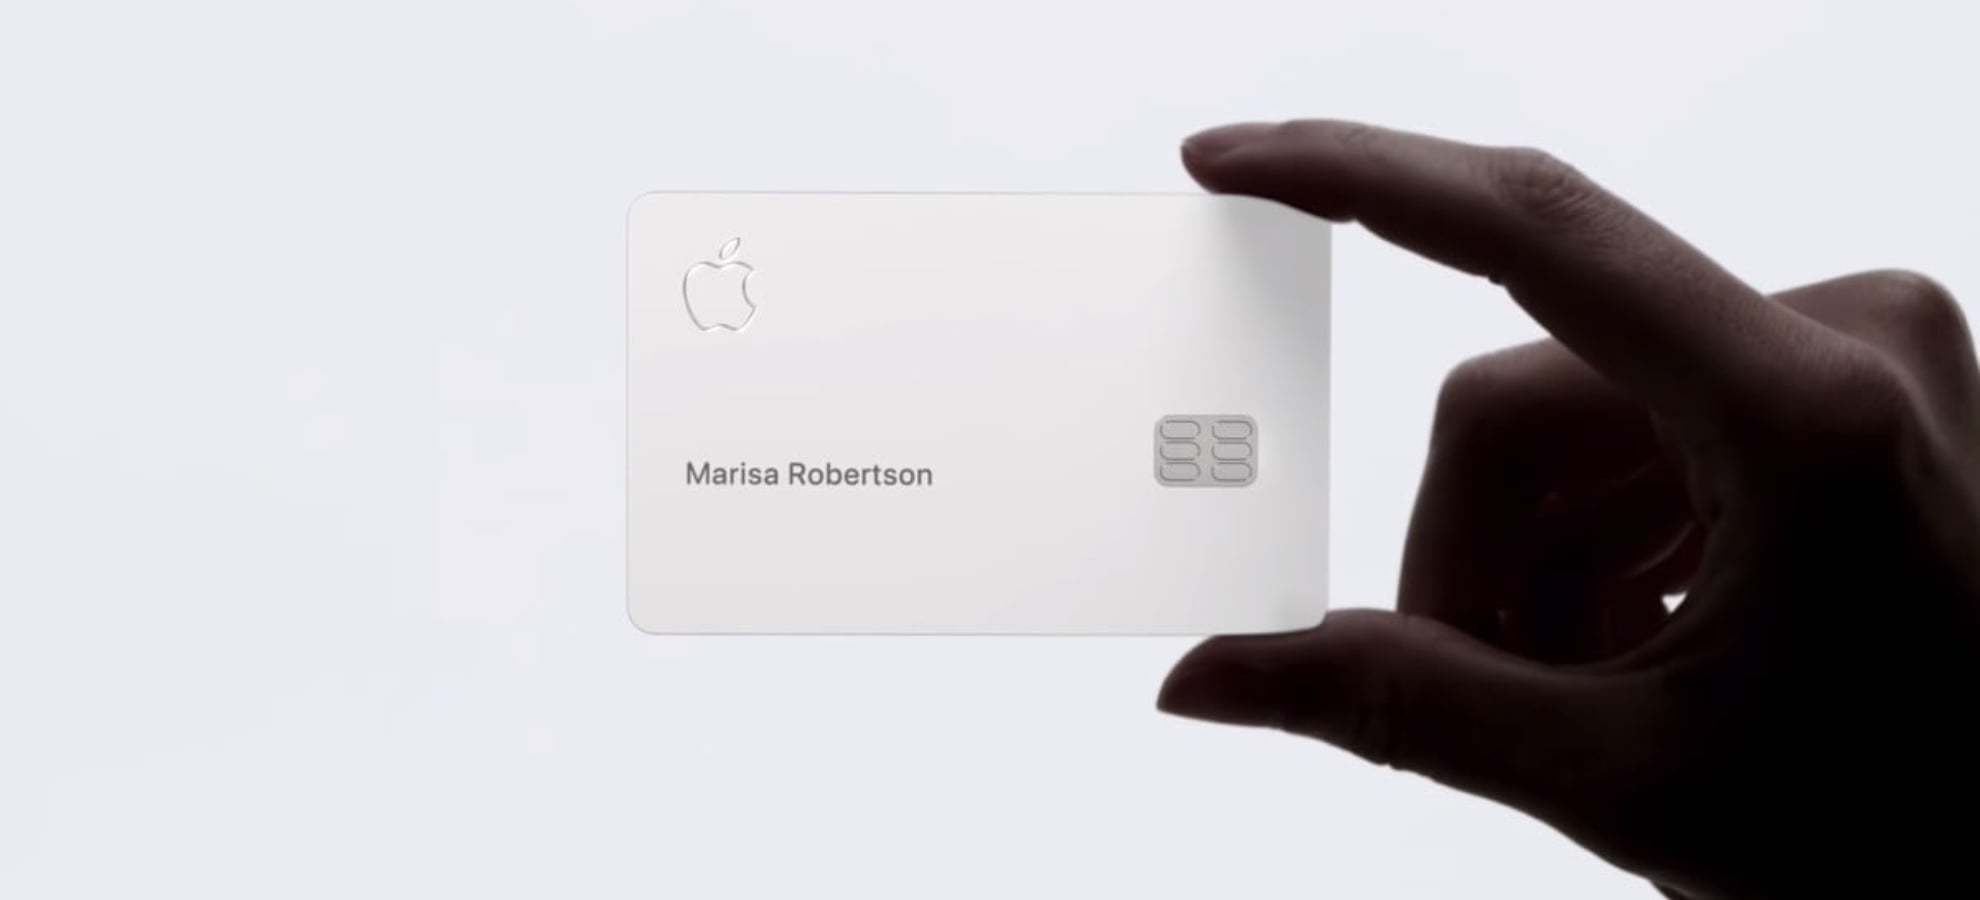 Is Apple Card for Real?